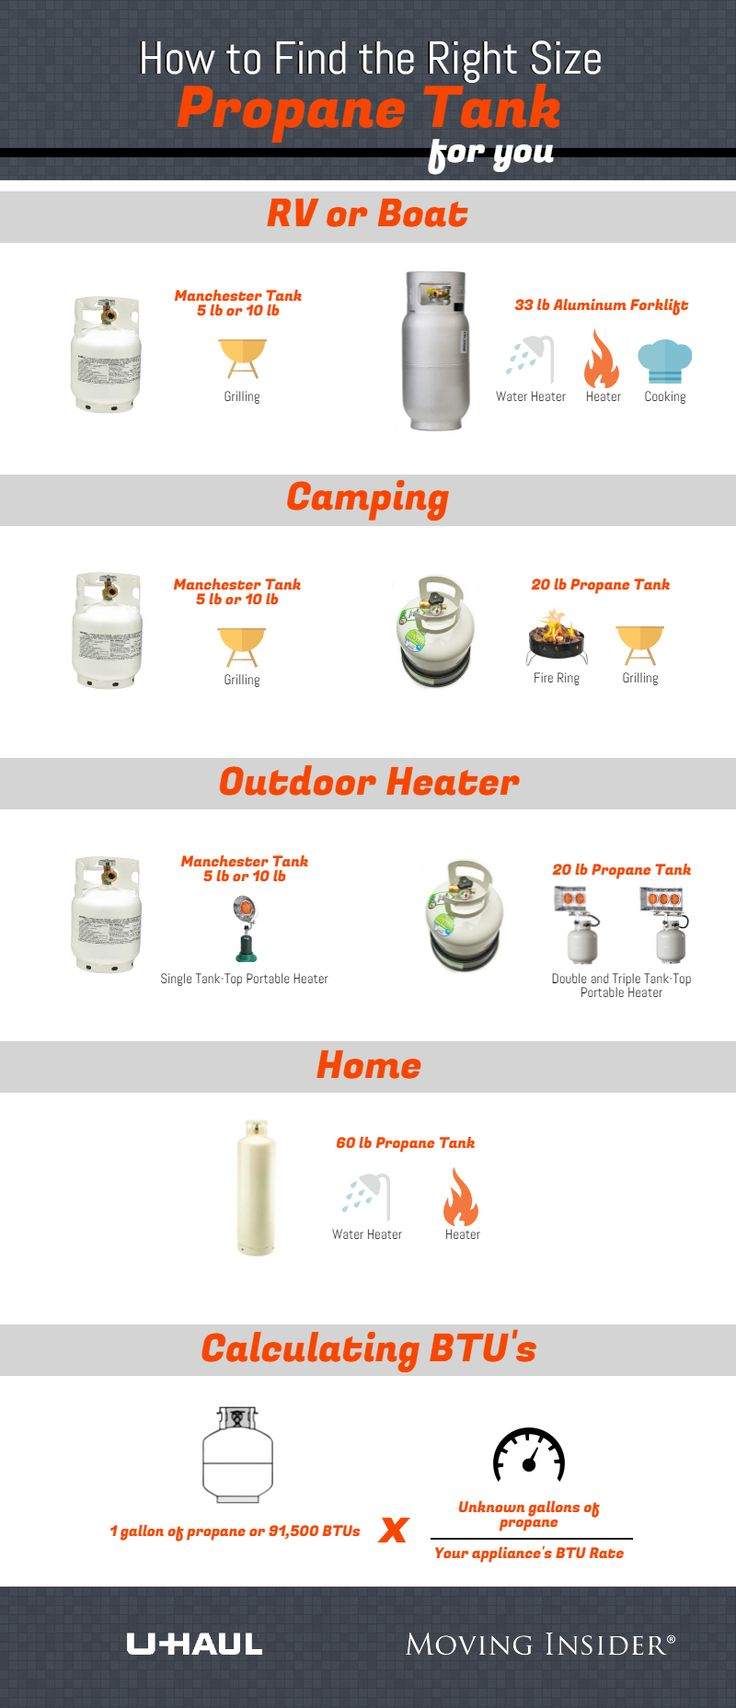 Most of us are familiar with the standard 20 lb. propane tank for backyard grilling, but other recreational activities require different sizes. Learn what size propane tank is generally best for different purposes as well as how to calculate the specific consumption of propane for your appliances below. | Moving Insider Tips